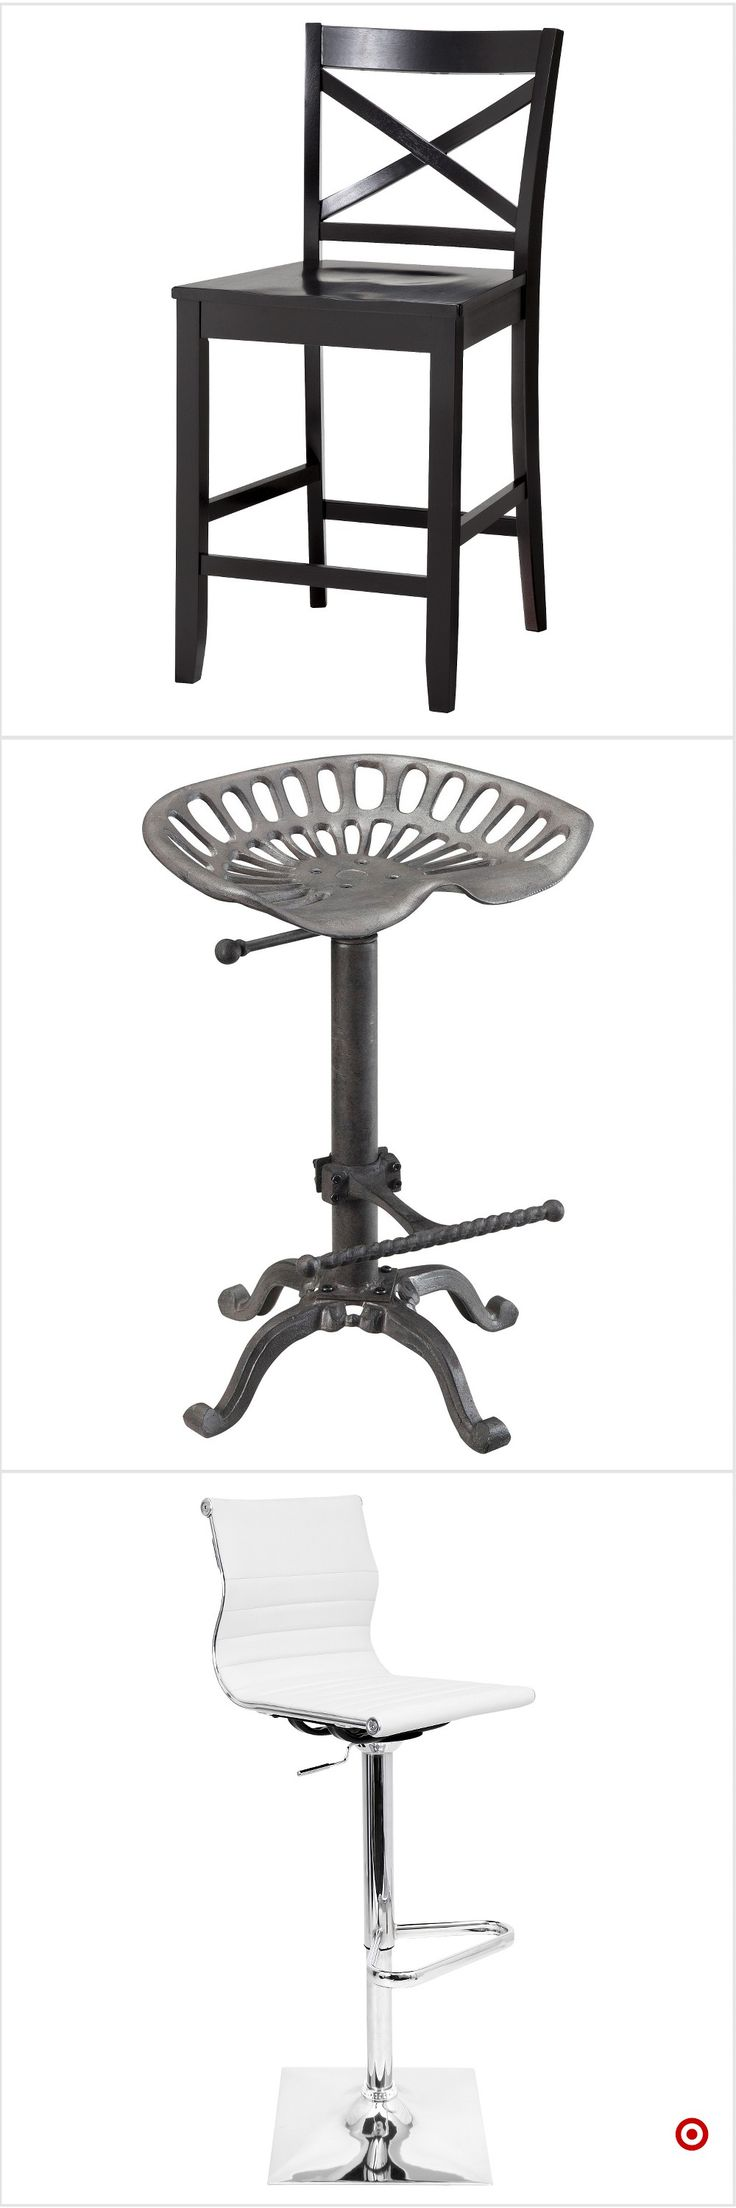 Shop Target for extra tall stools you will love at great low prices. Free shipping on orders of $35+ or free same-day pick-up in store.